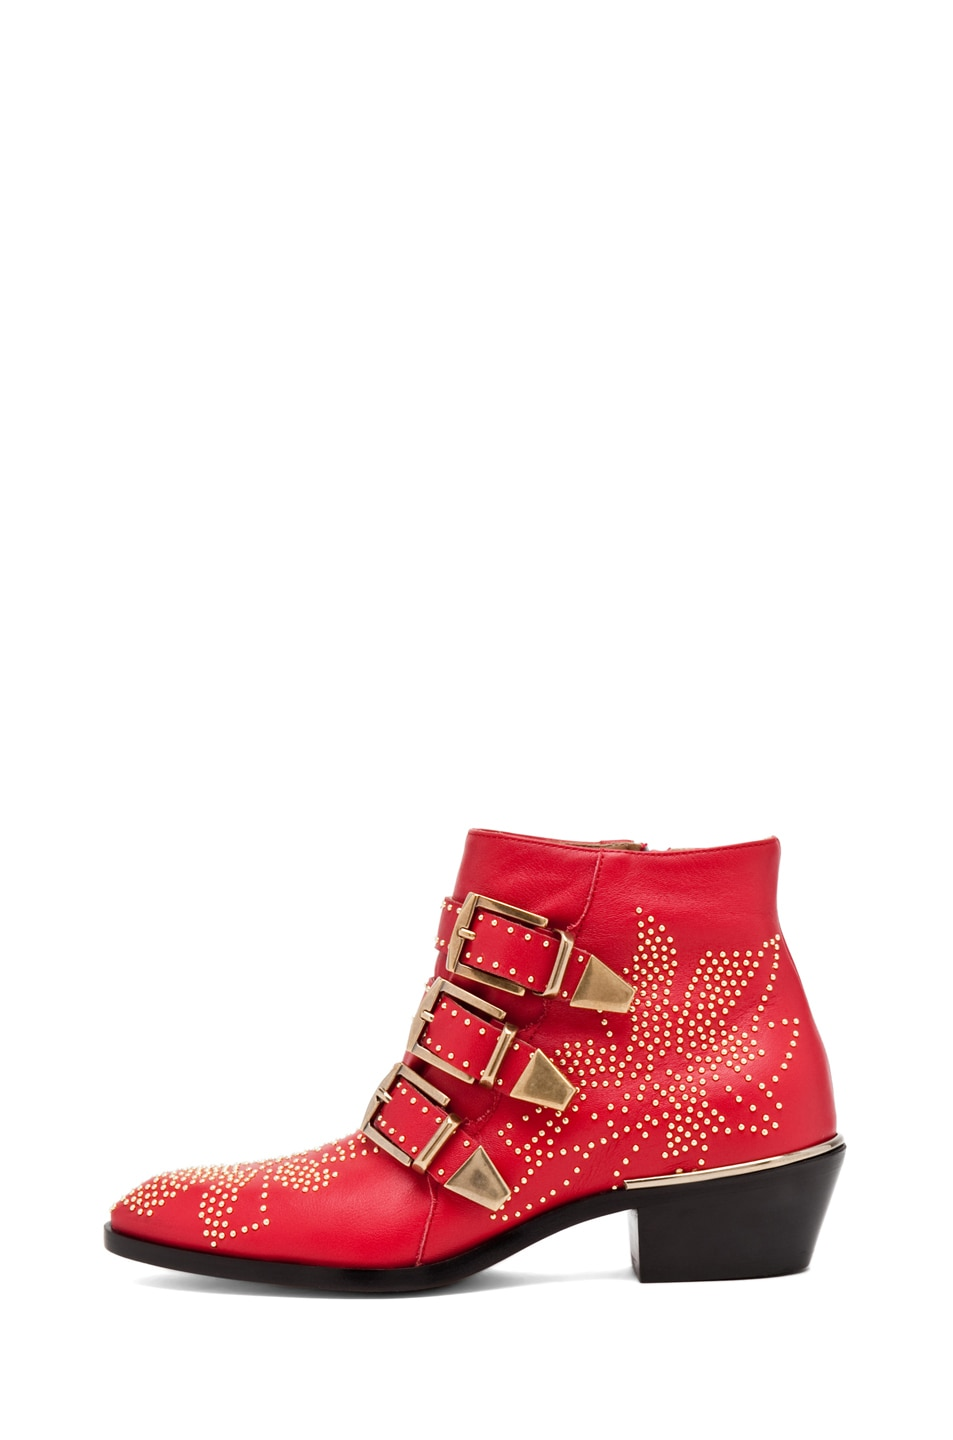 Image 1 of Chloe Susanna Leather Studded Booties in Red